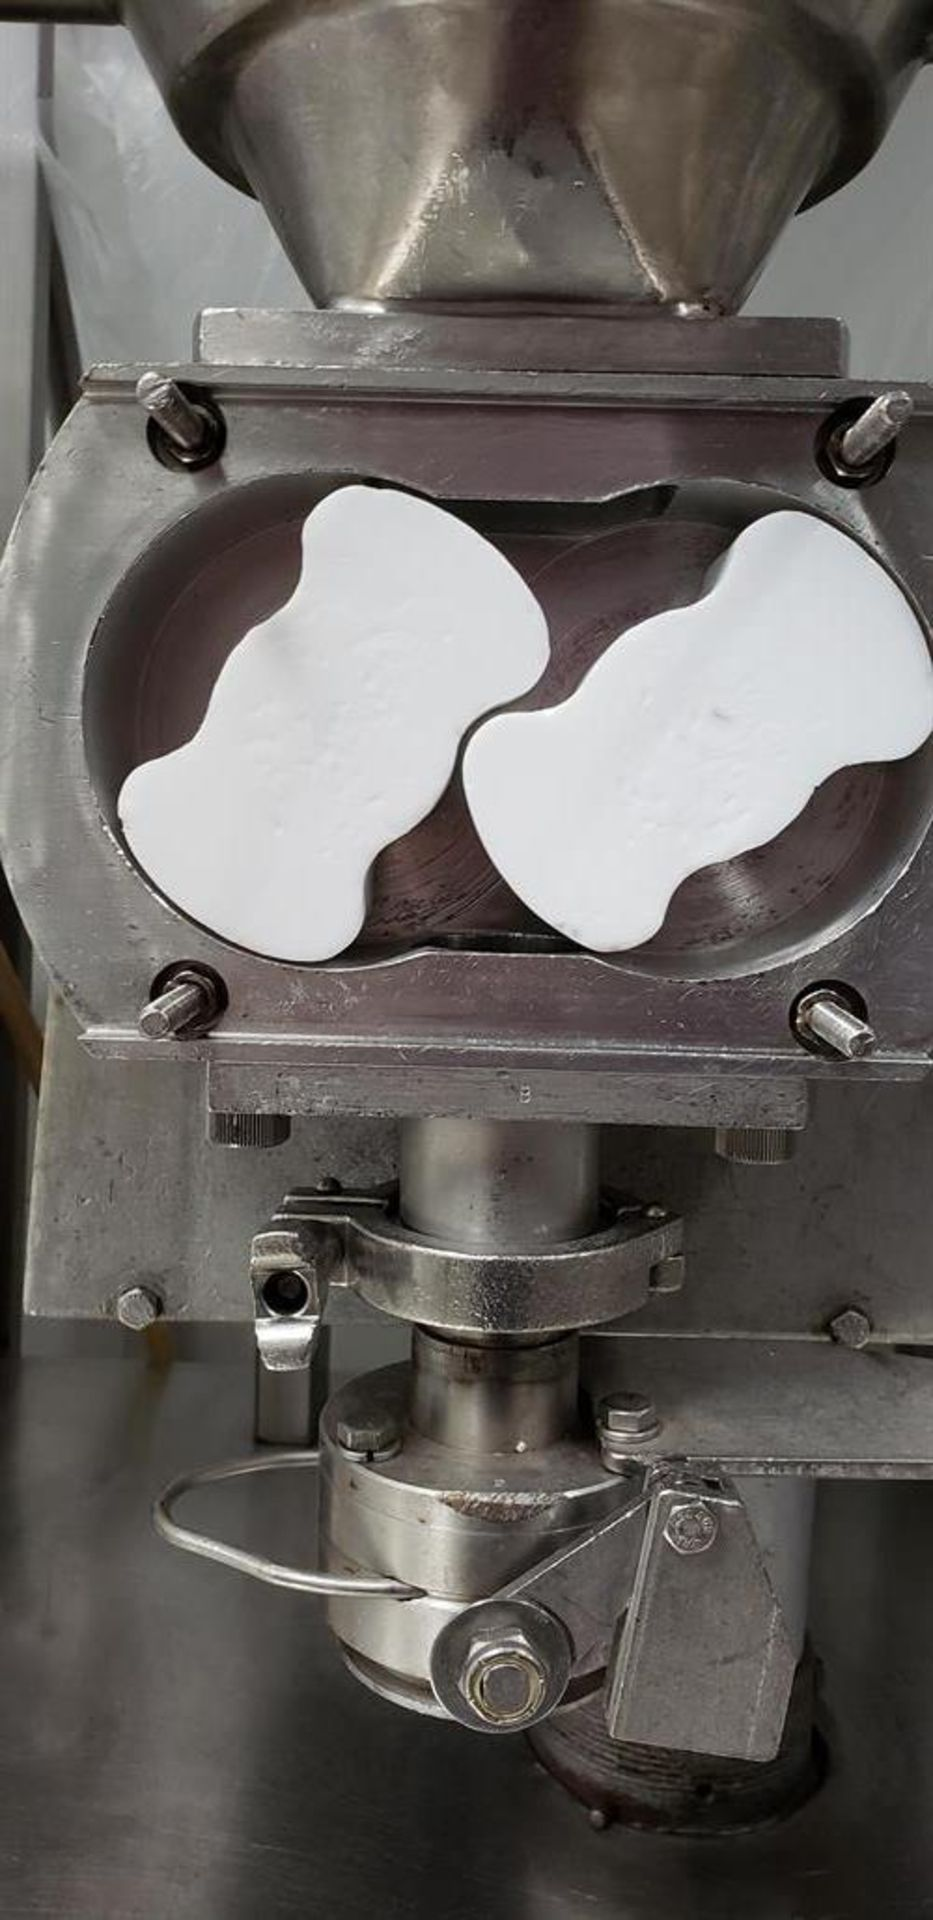 Mateer Burt Lobe Style Fudge Filler - Used for fudge trays - Model 50S - Heated hot water hopper - - Image 2 of 3